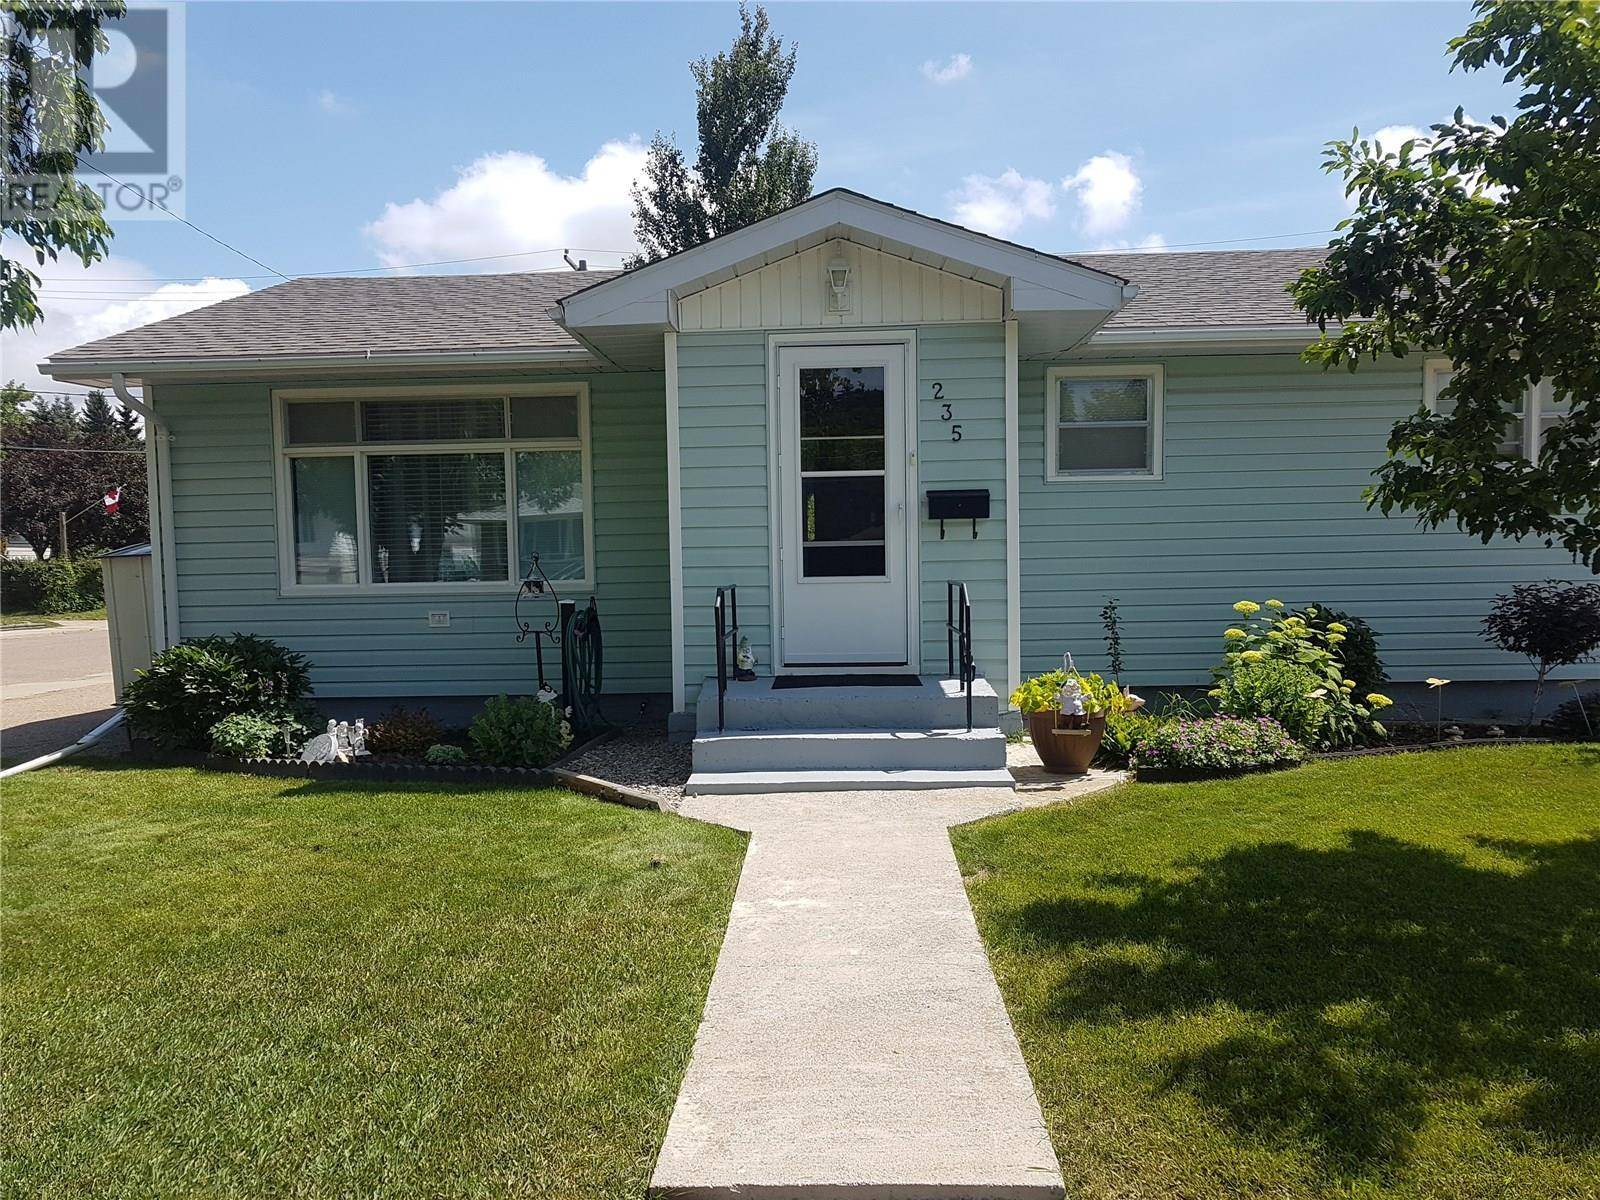 House for sale at 235 14th Ave Ne Swift Current Saskatchewan - MLS: SK763879